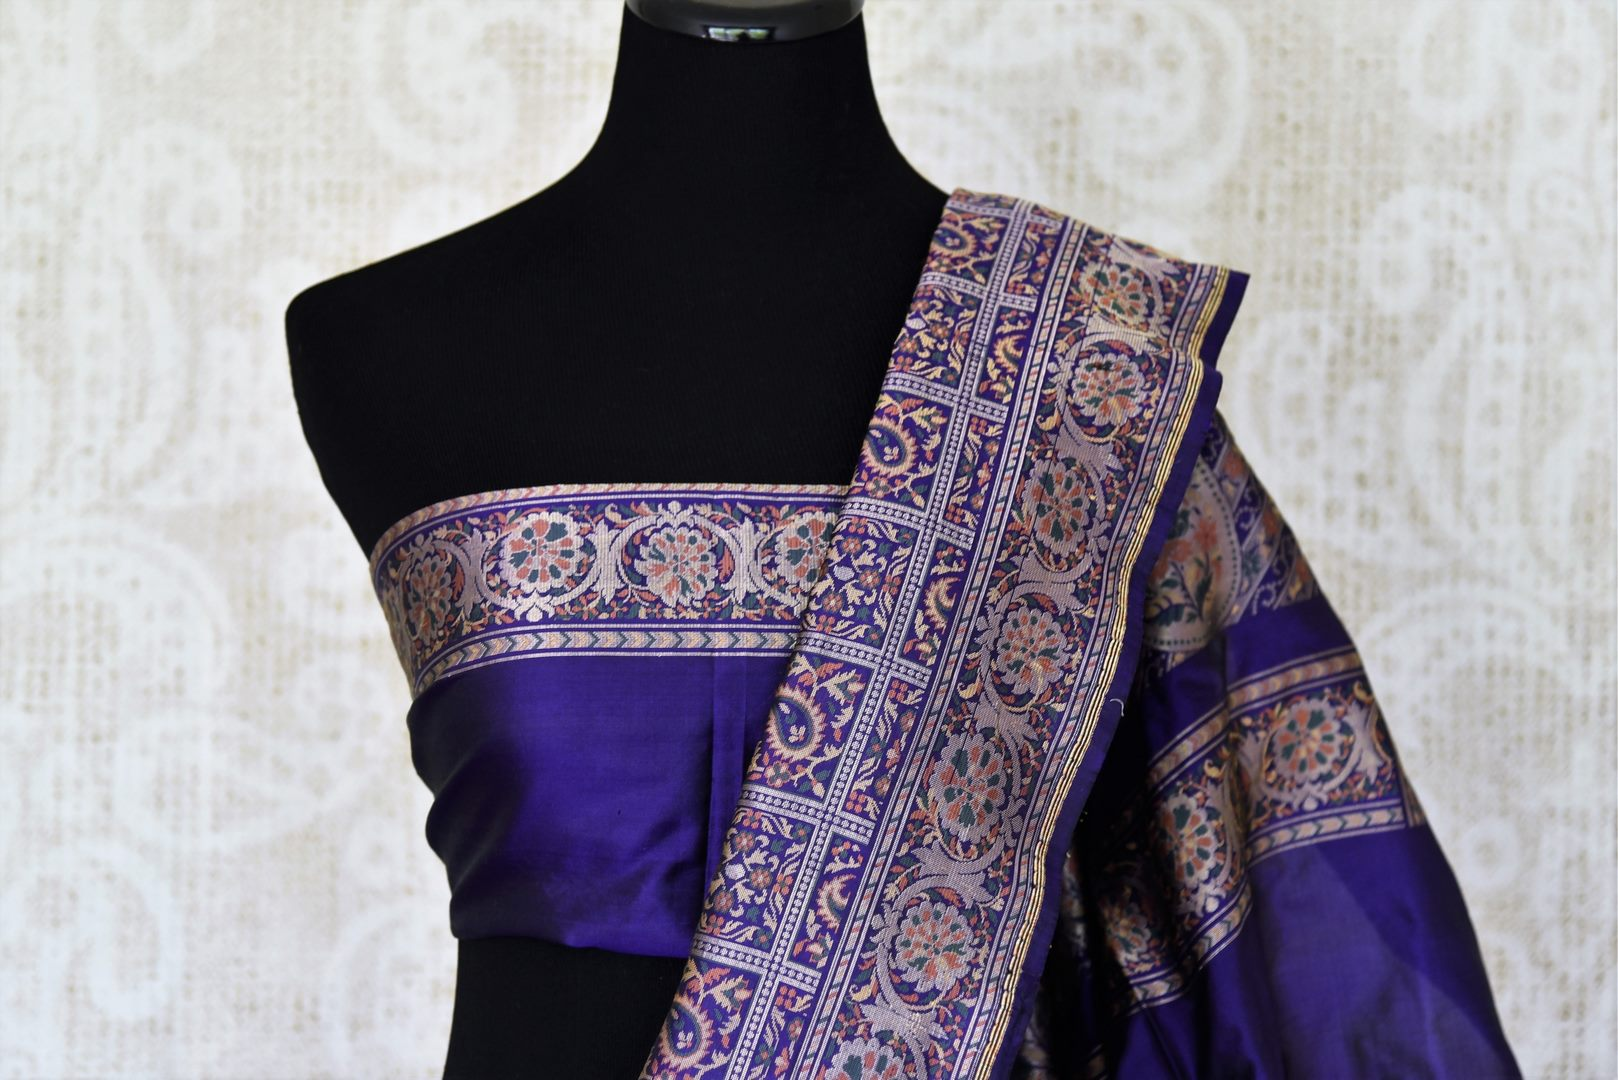 Emanate a flair of sophistication in this purple banarsi and tanchoi printed silk saree. The wonderful melange of colors and prints exude subtle sass. Style this saree with a plain purple blouse. Shop handloom sarees, banarsi silk sari, linen sari online or visit Pure Elegance store, USA.-blouse pallu